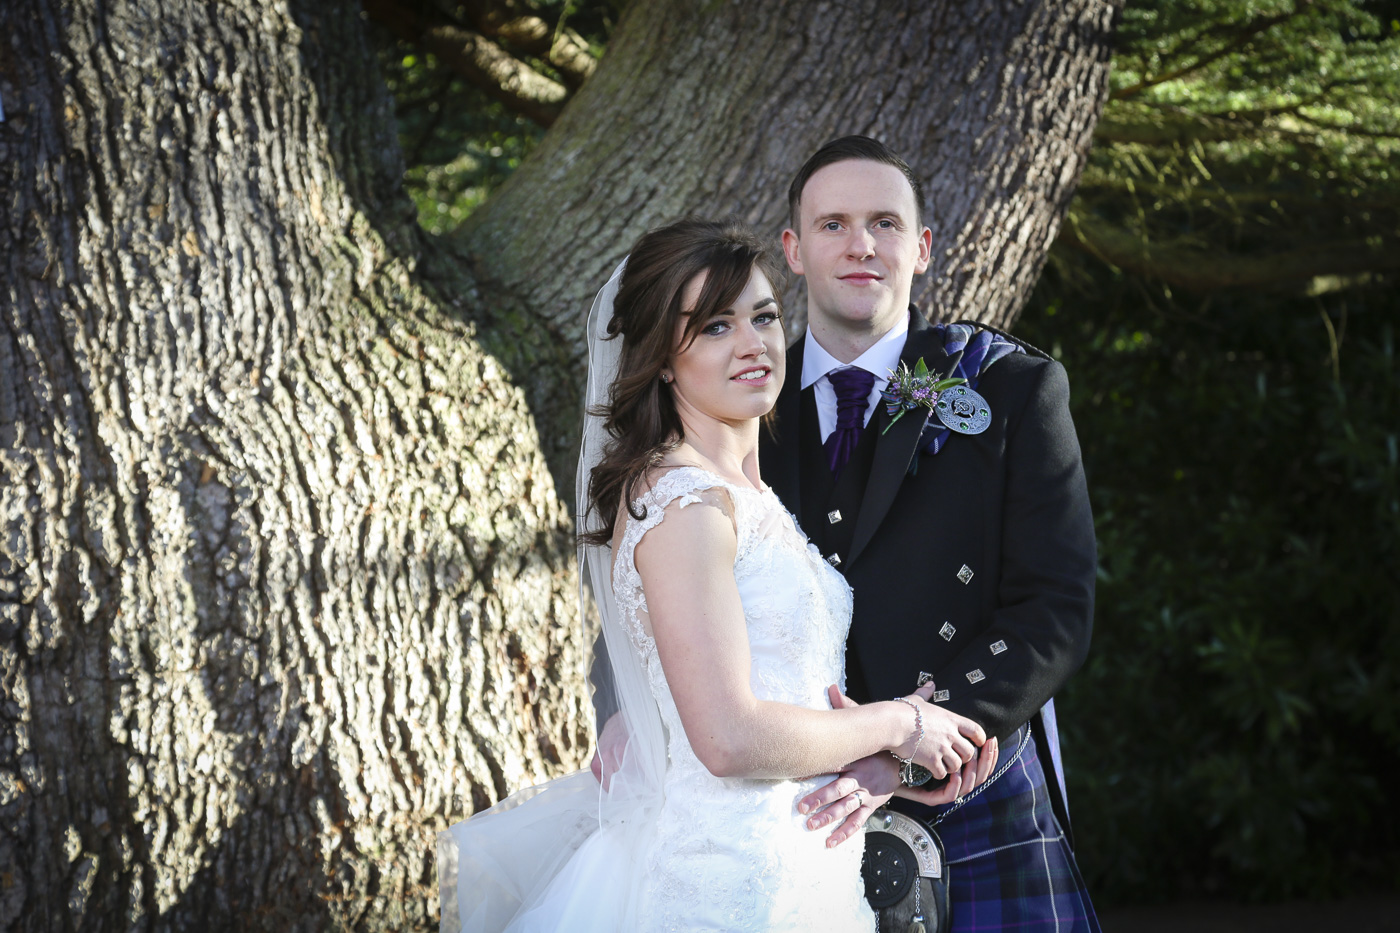 wedding-photography-at-bunchrew-house-inverness-9151